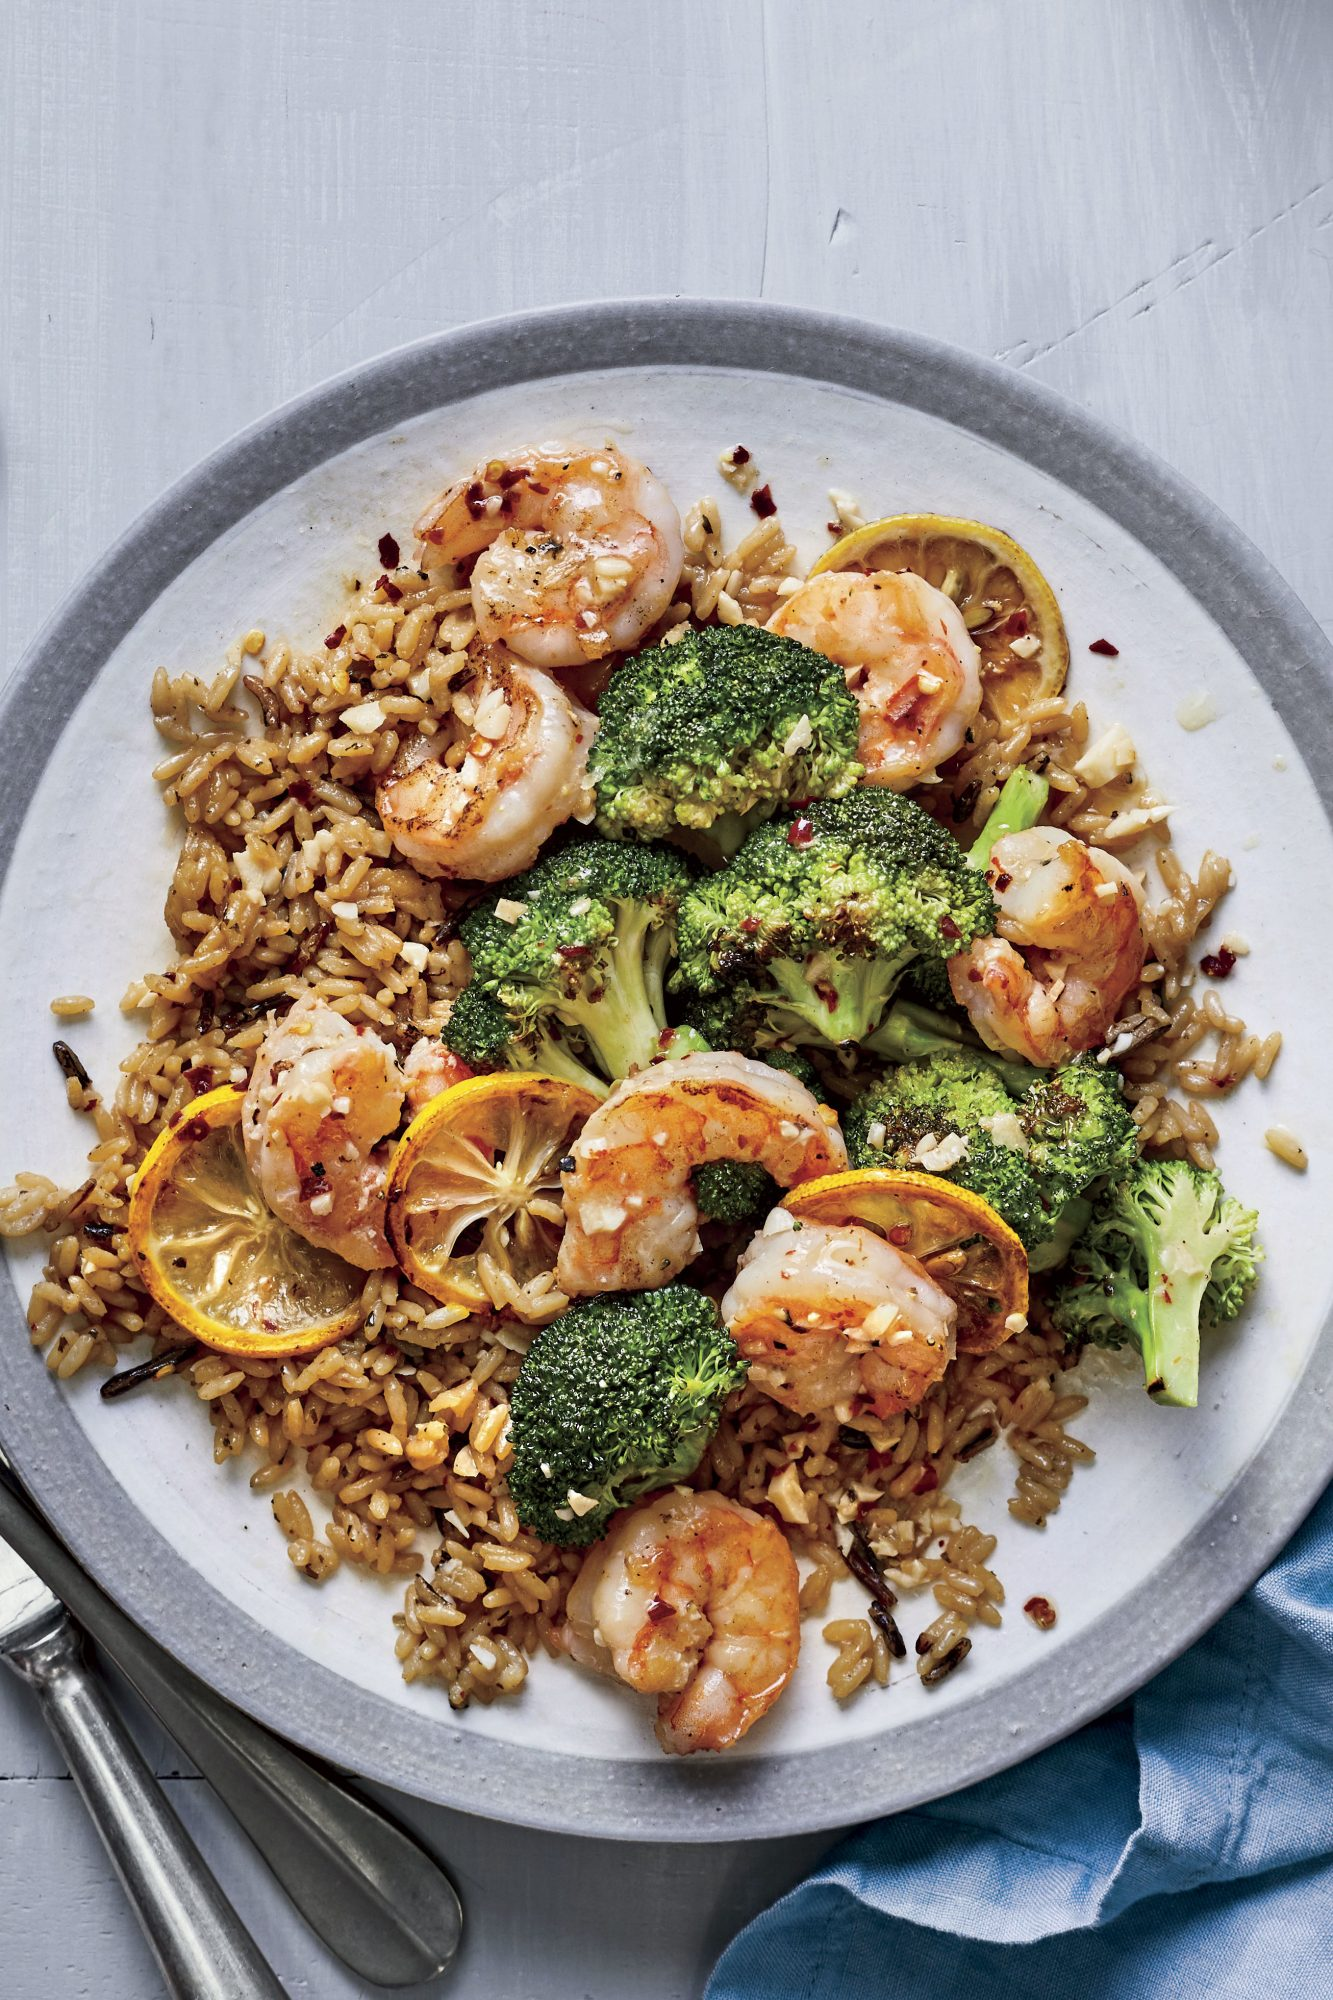 Lemon-Garlic Butter Shrimp and Broccoli